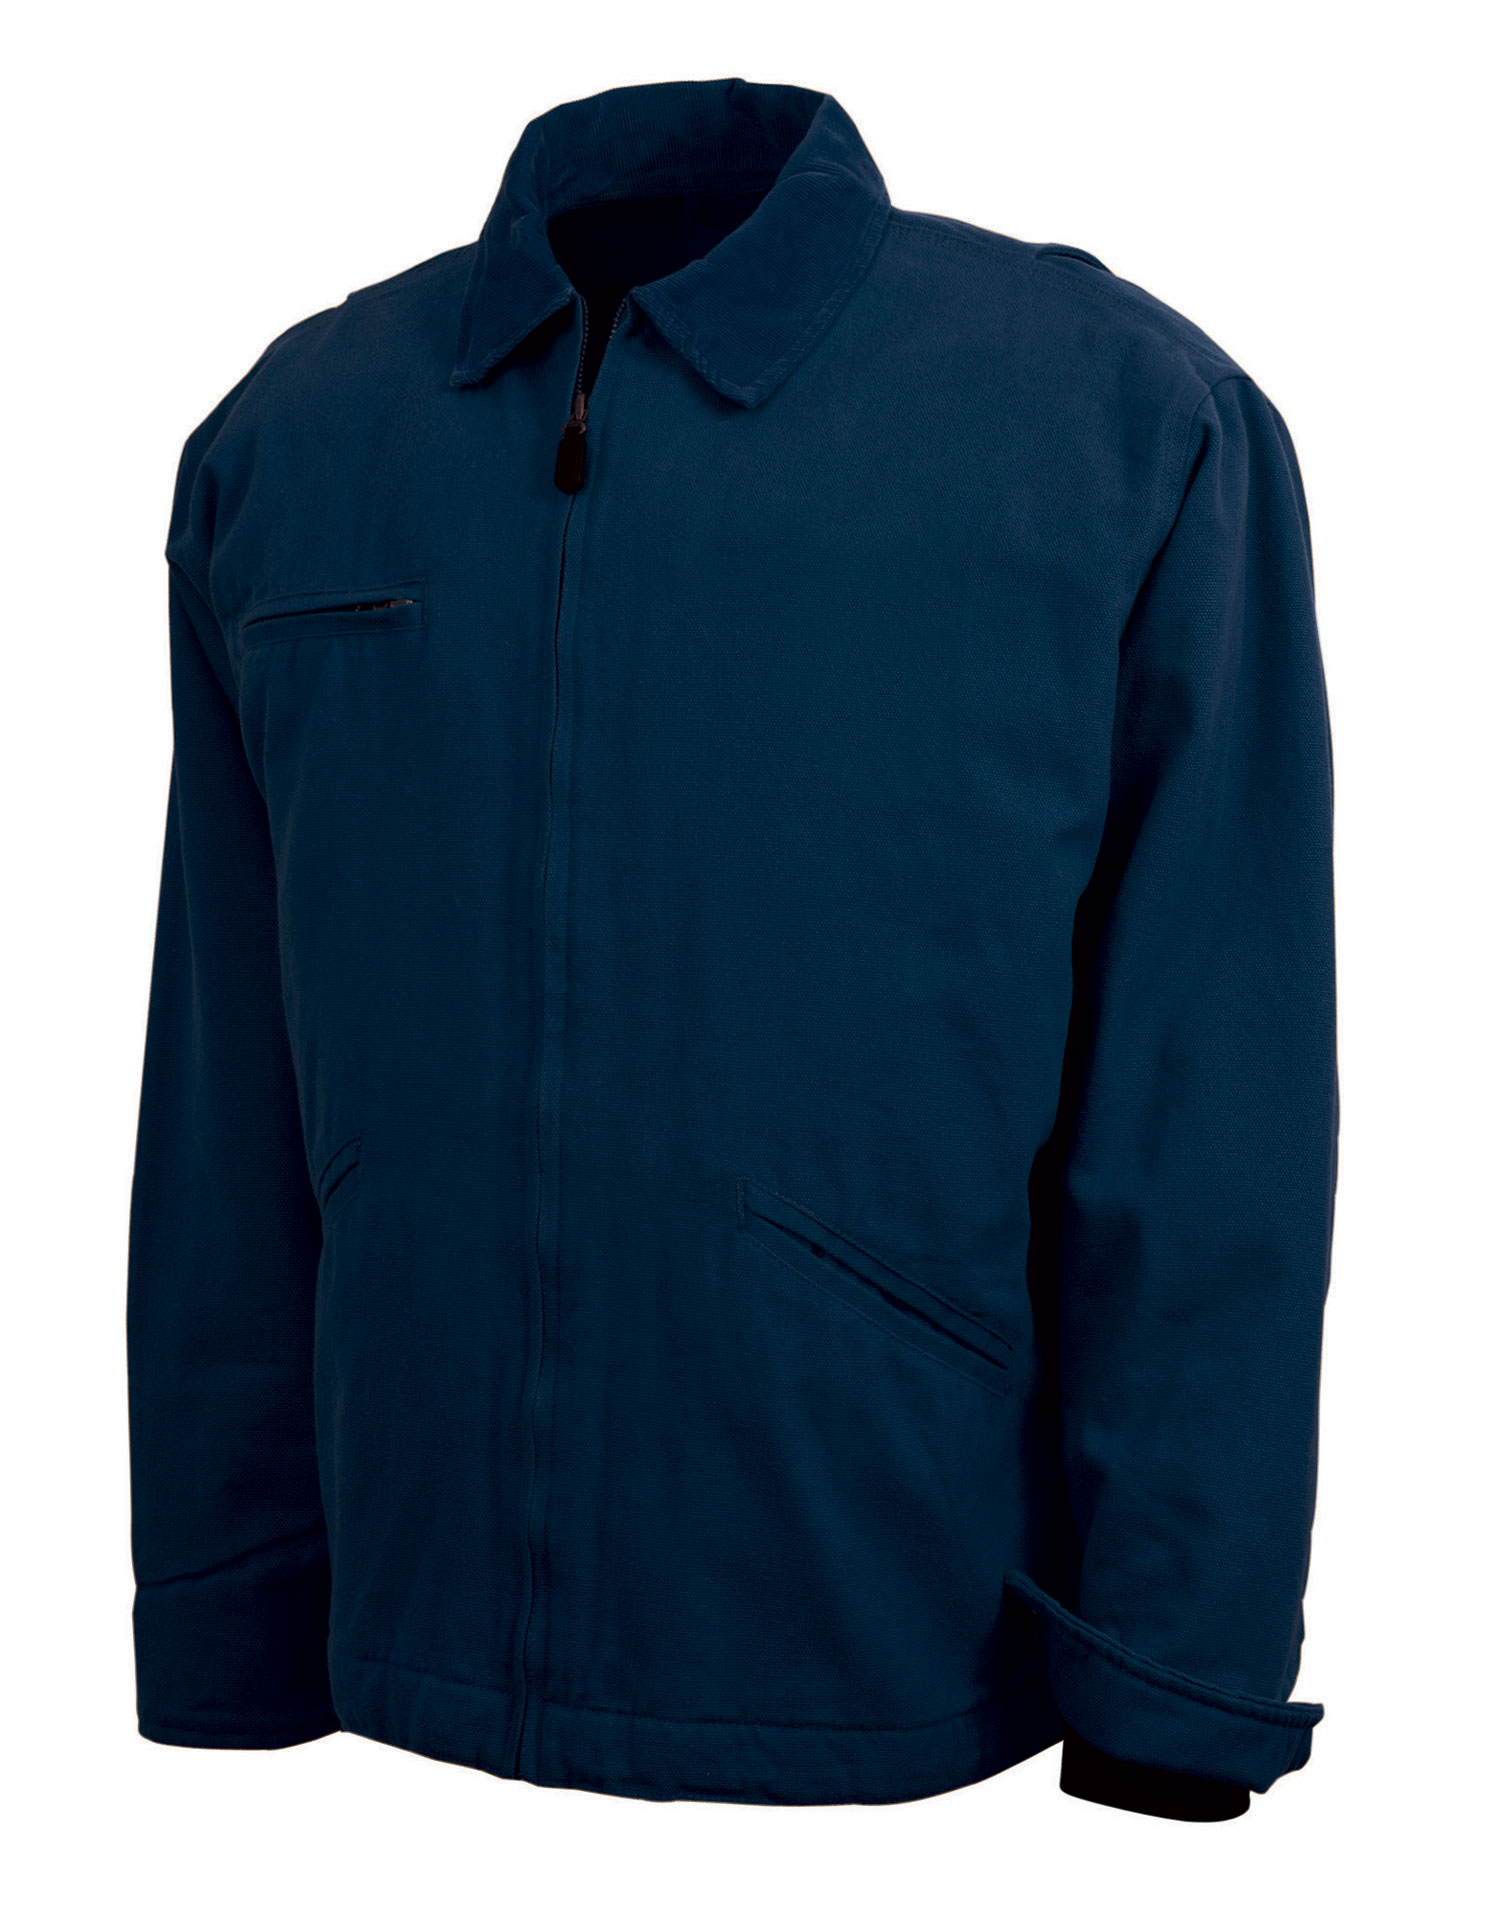 Charles River Cotton Duck Collared Canyon Jacket